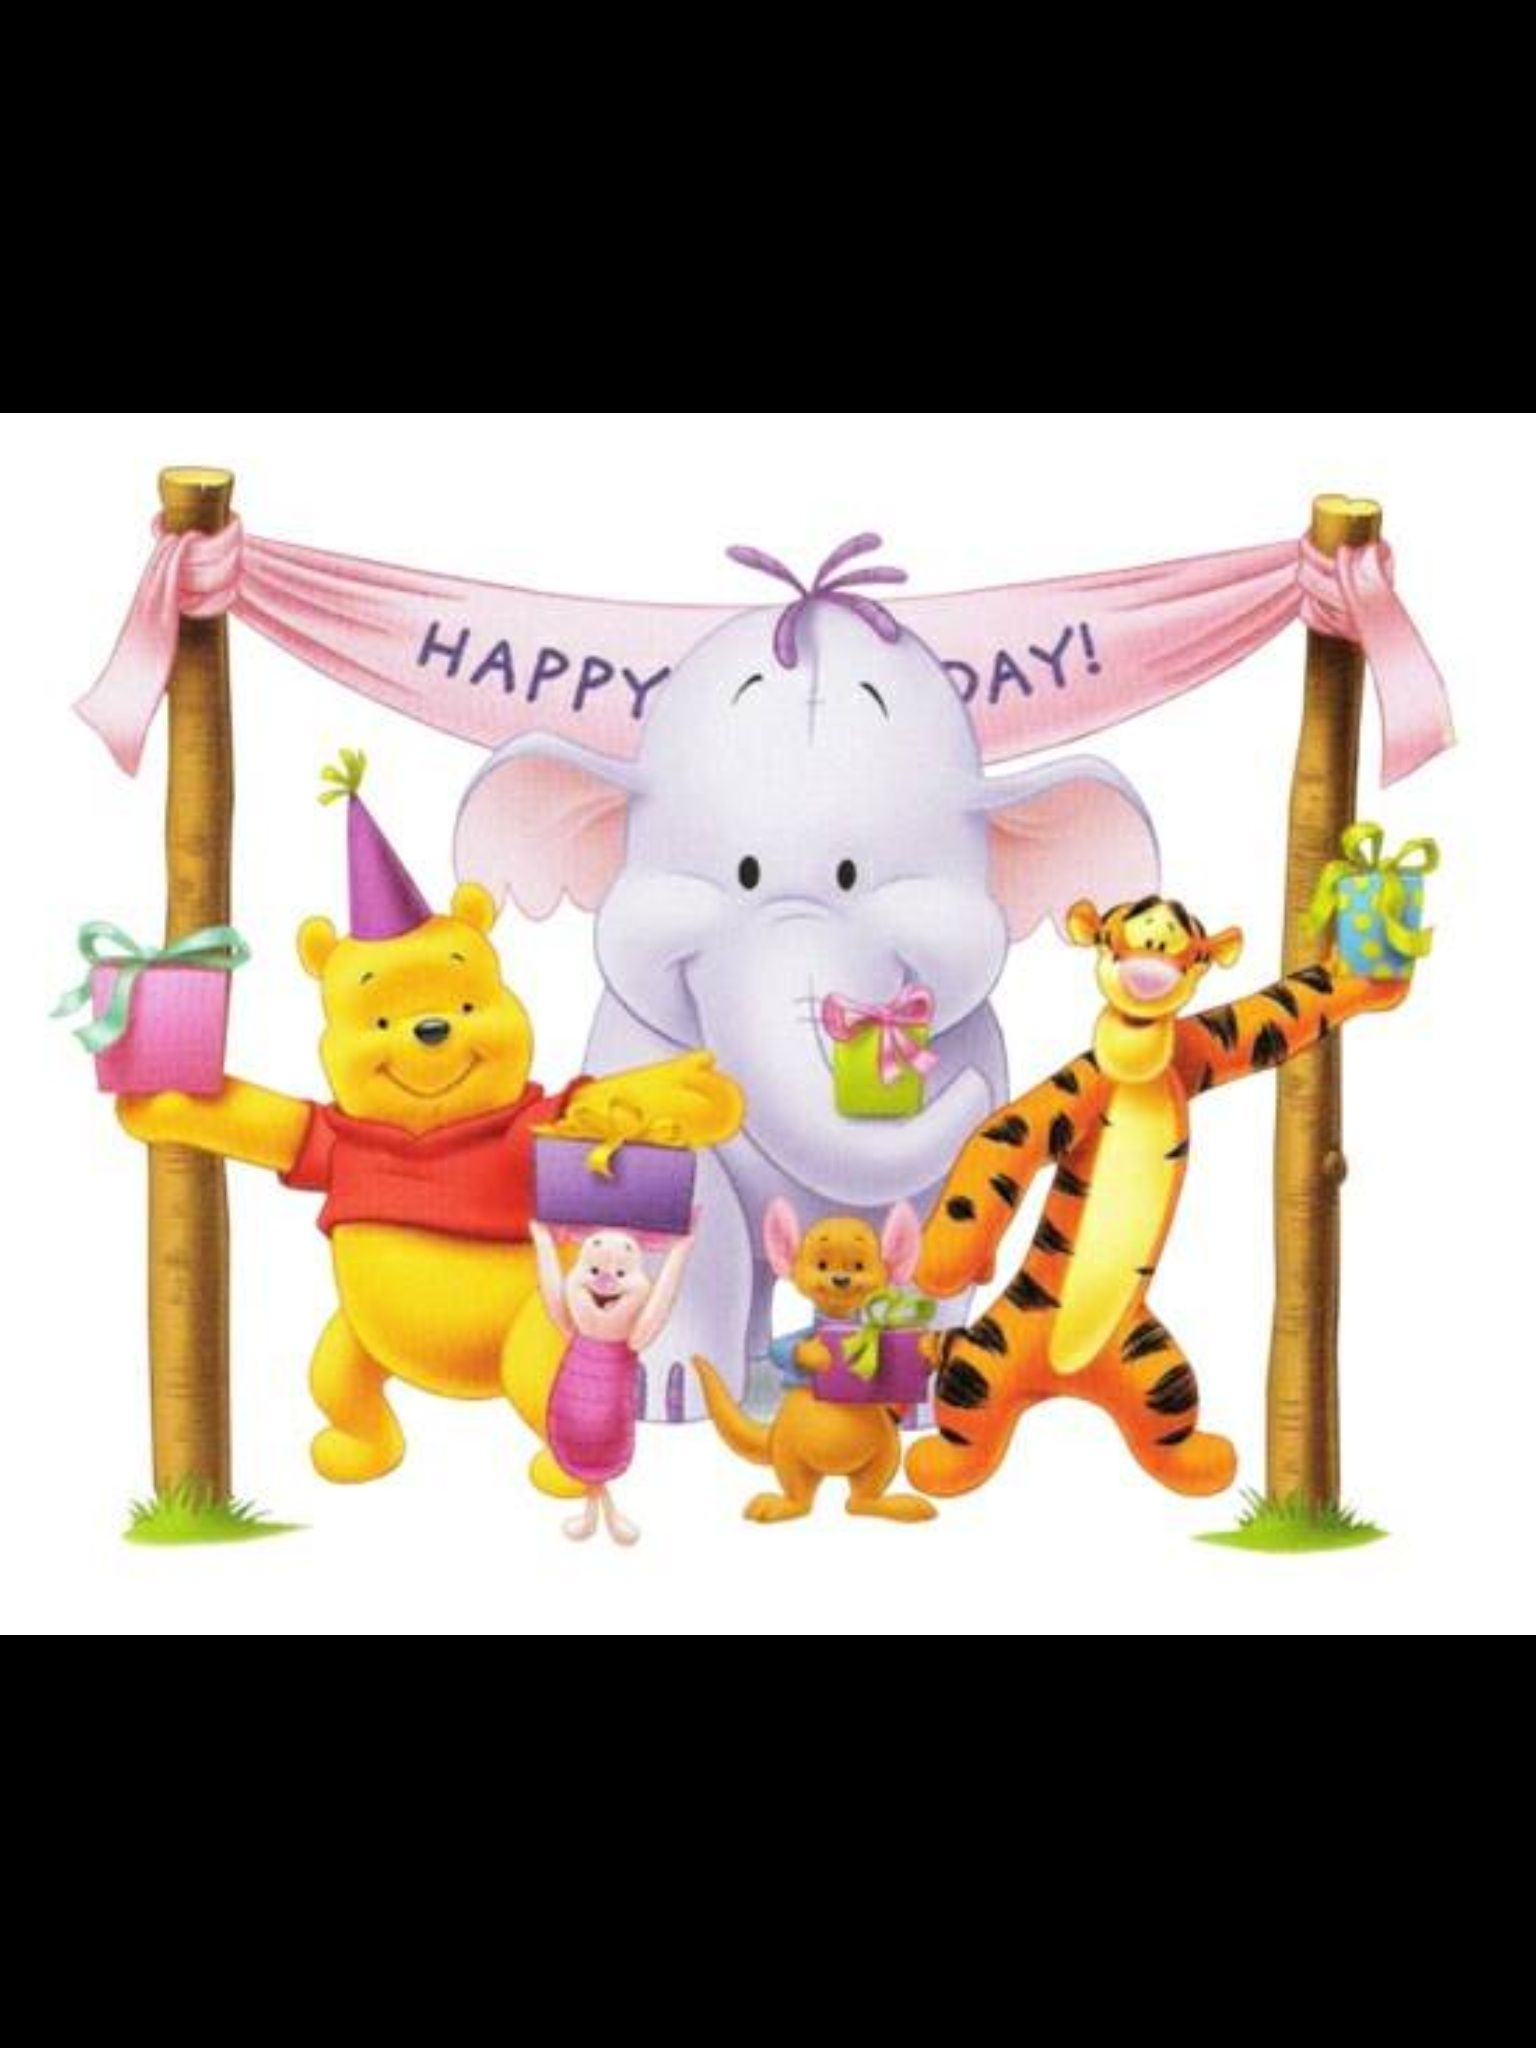 Happy birthday winnie the pooh party pinterest happy birthday free disney birthday clipart and disney animated gifs disney graphic characters brought to you by triplets and us kristyandbryce Choice Image